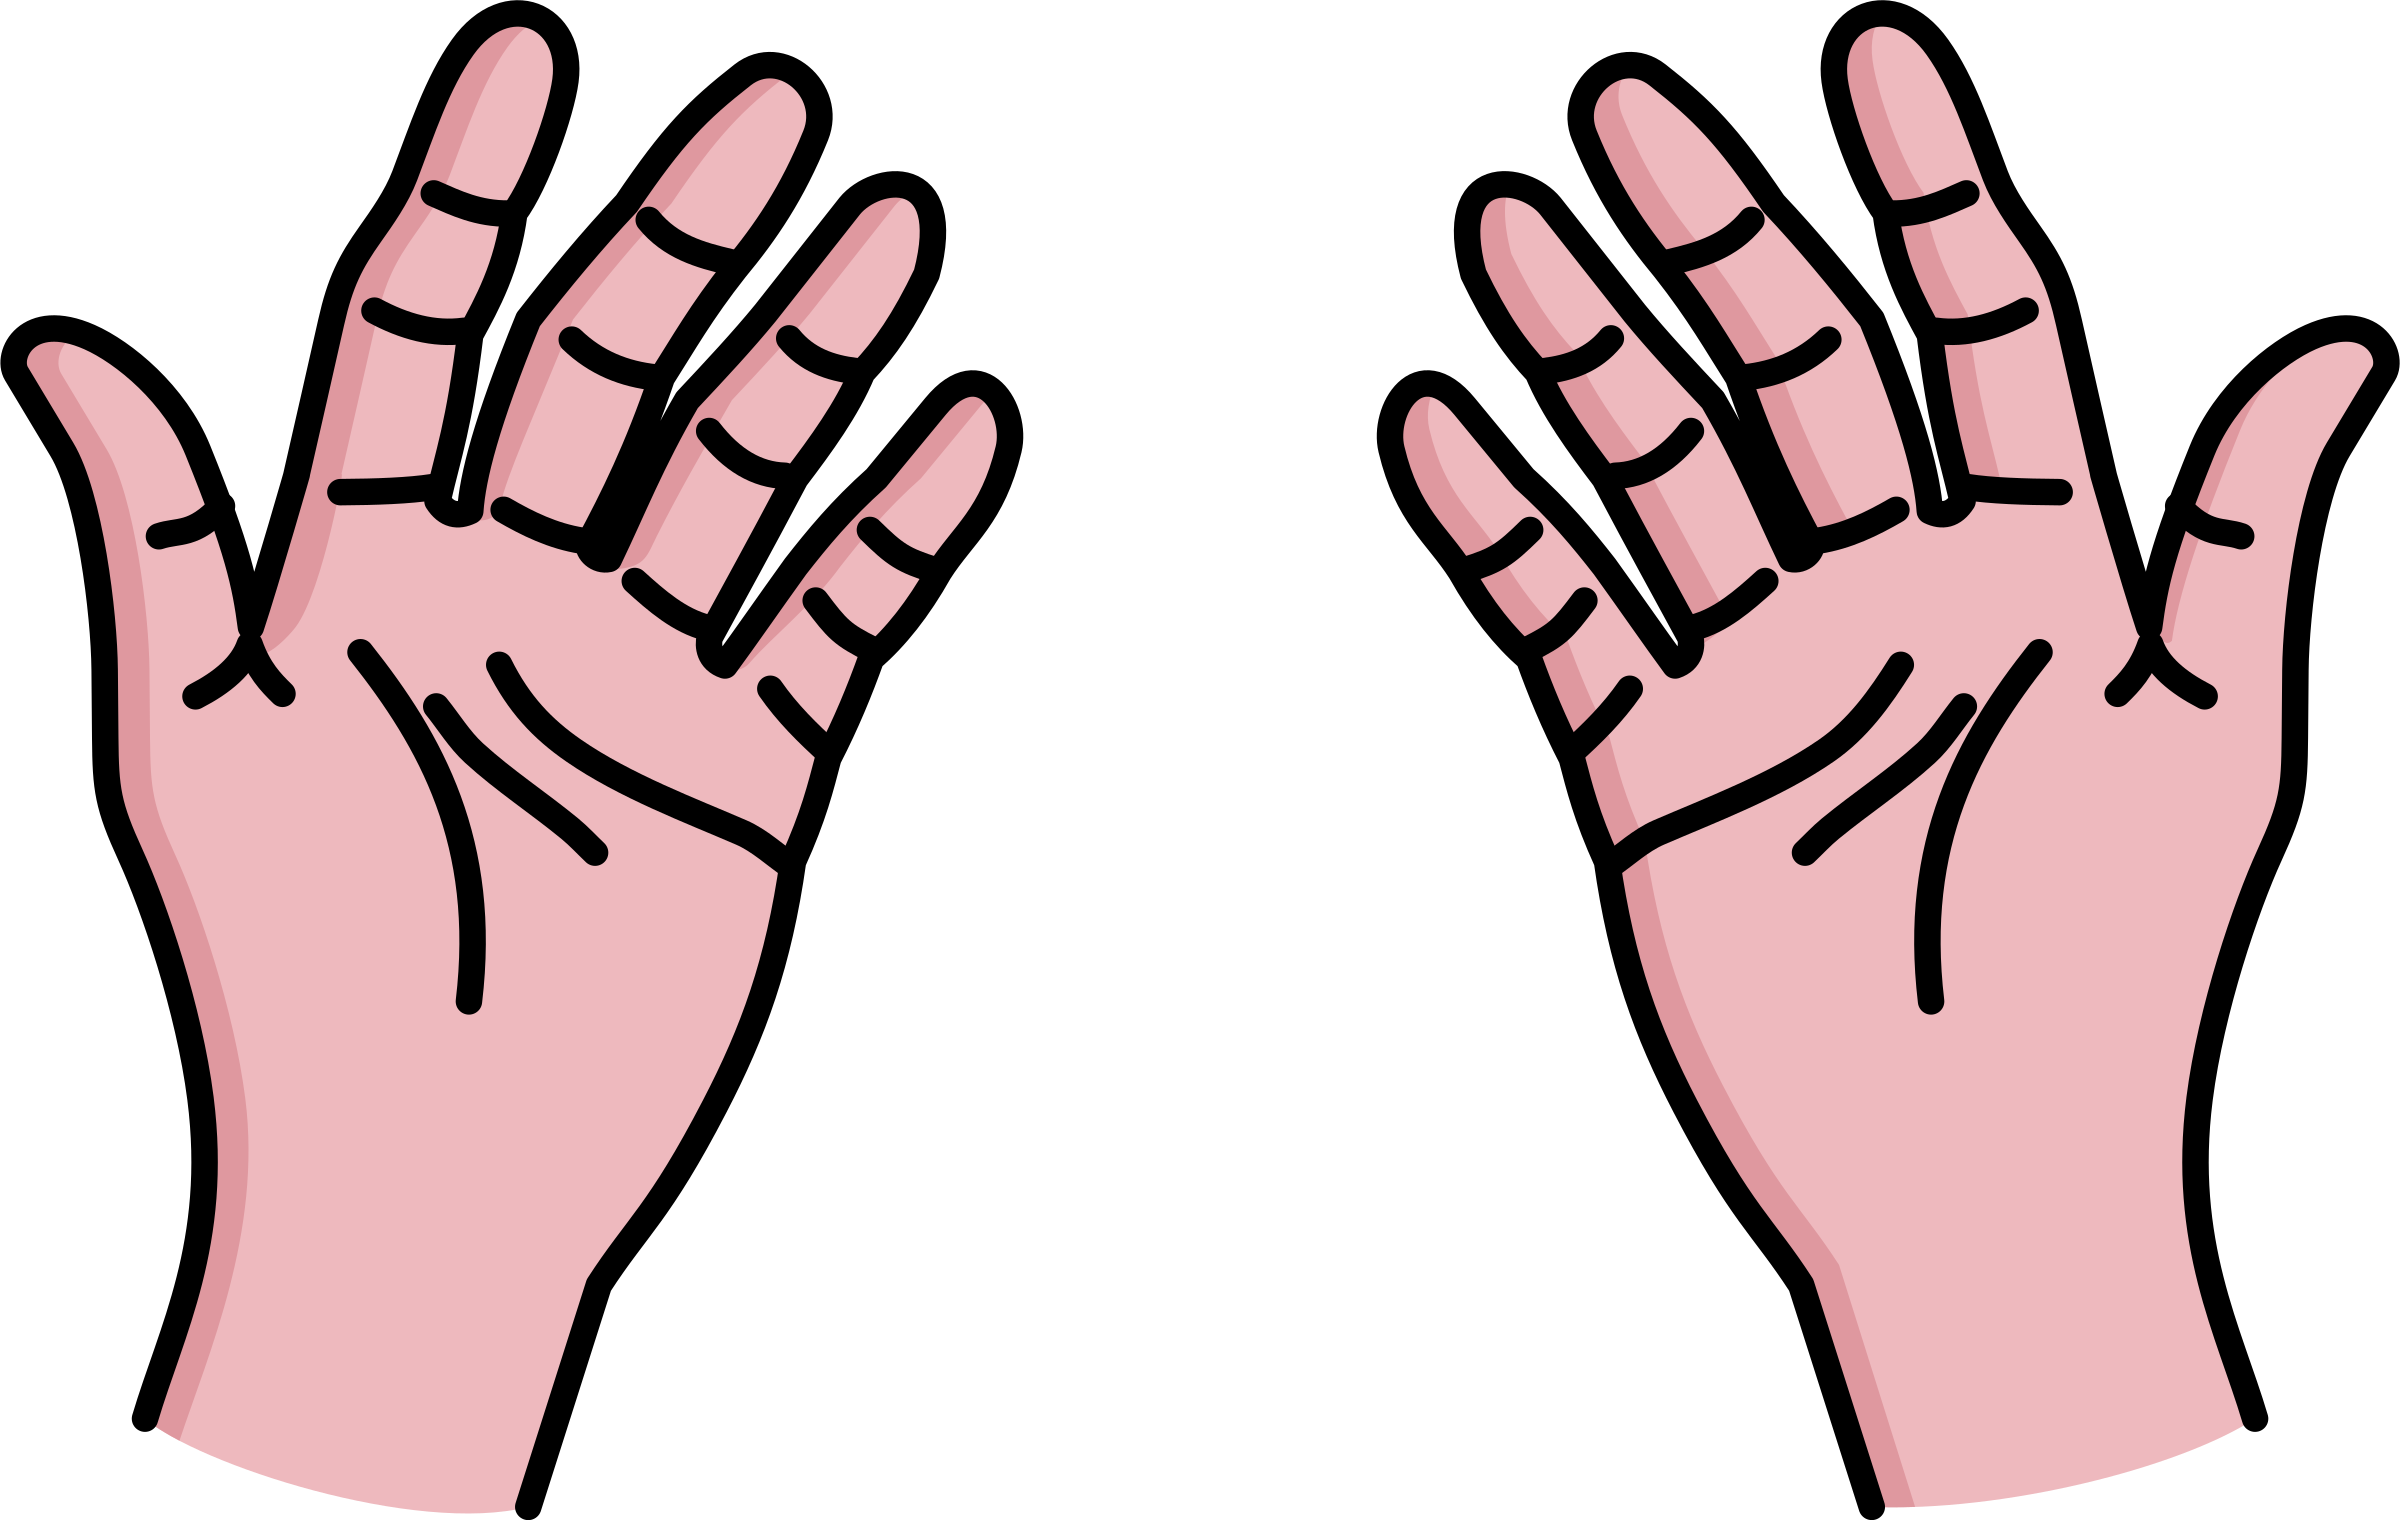 Hand Gesture clipart outstretched hand Hands Shaking Clipart of hands